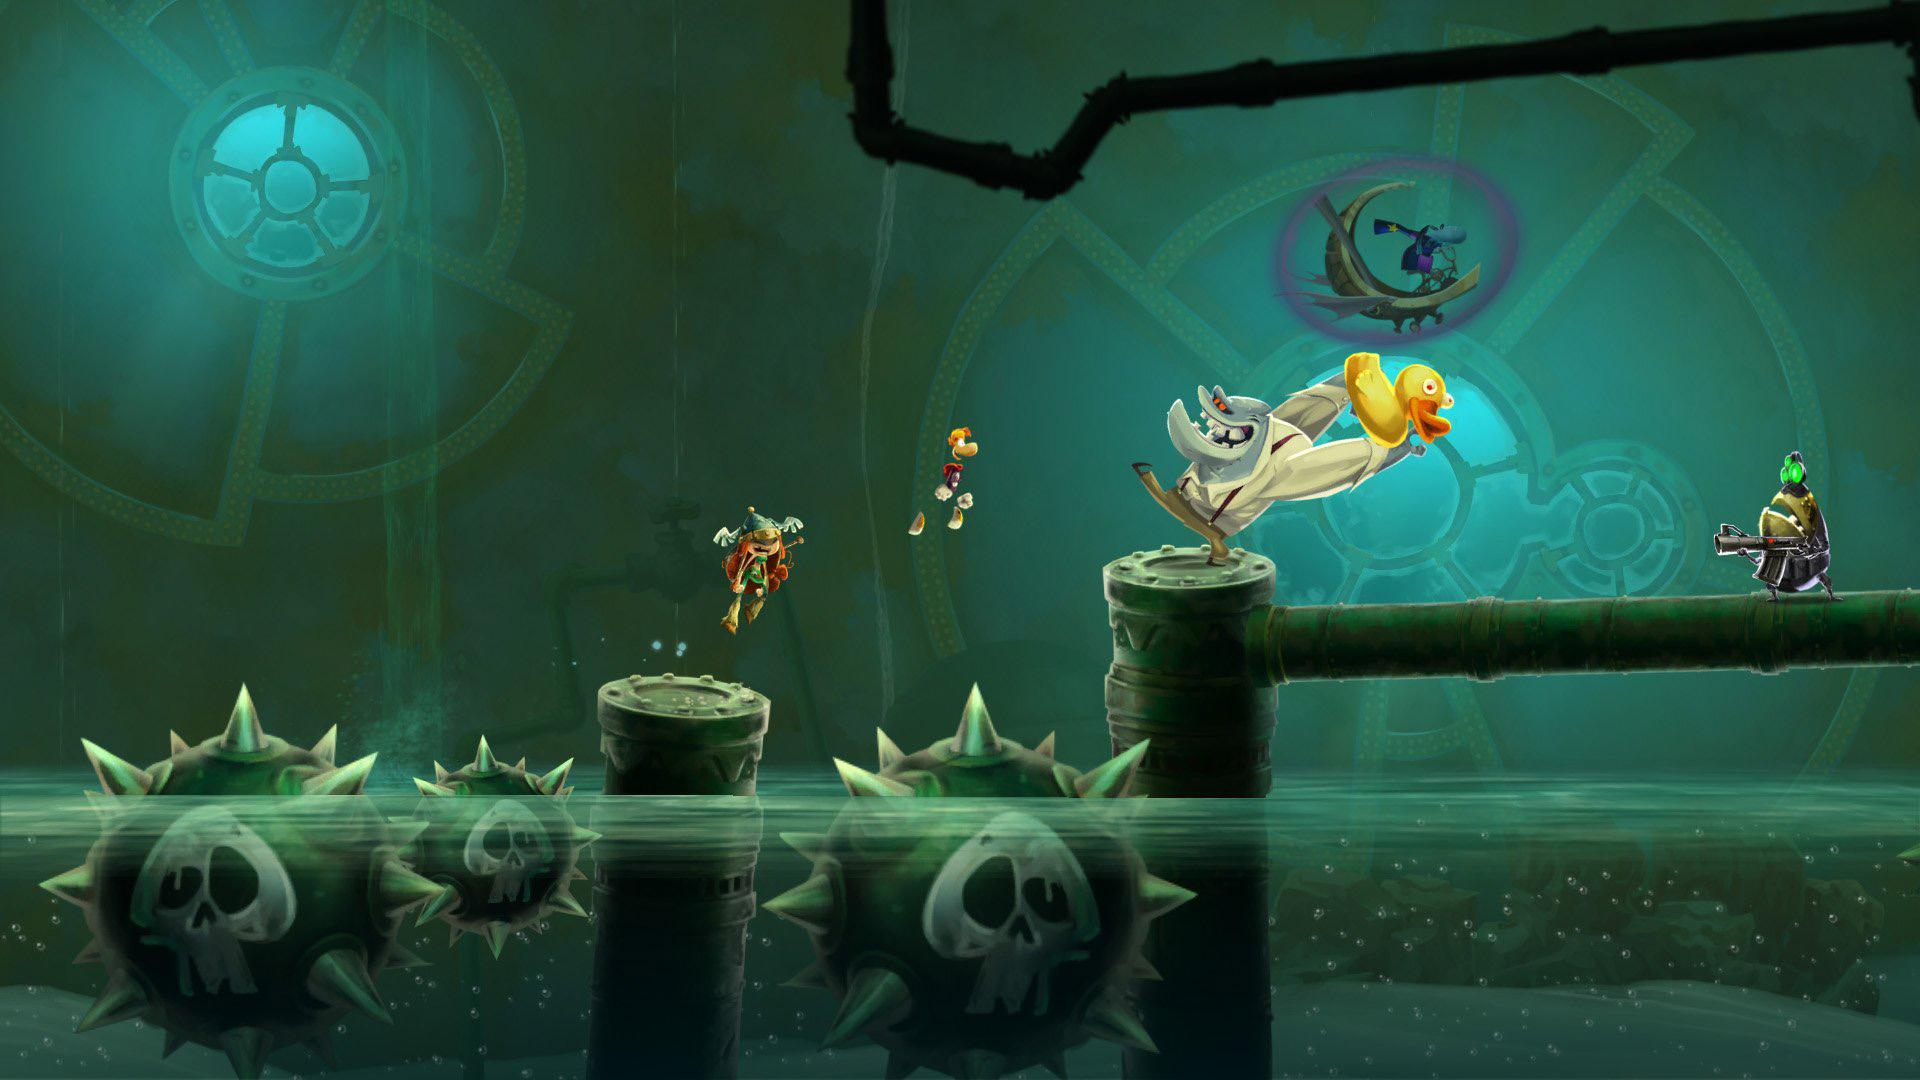 Multiplayer fun in Rayman Legends